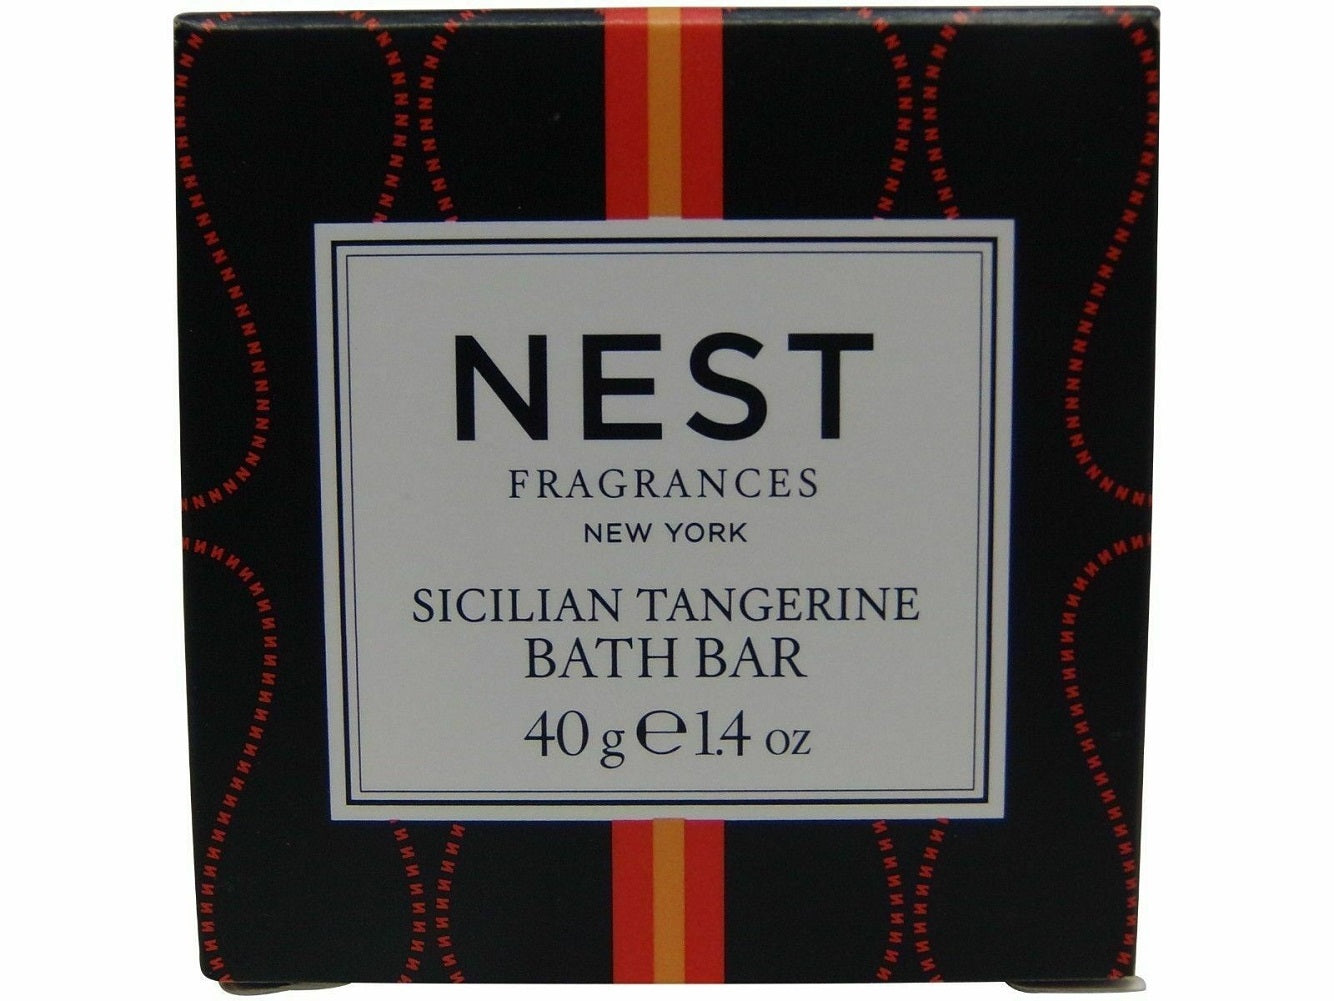 Nest Fragrances Travel Set Shampoo Conditioner Body Cream Wash Soap